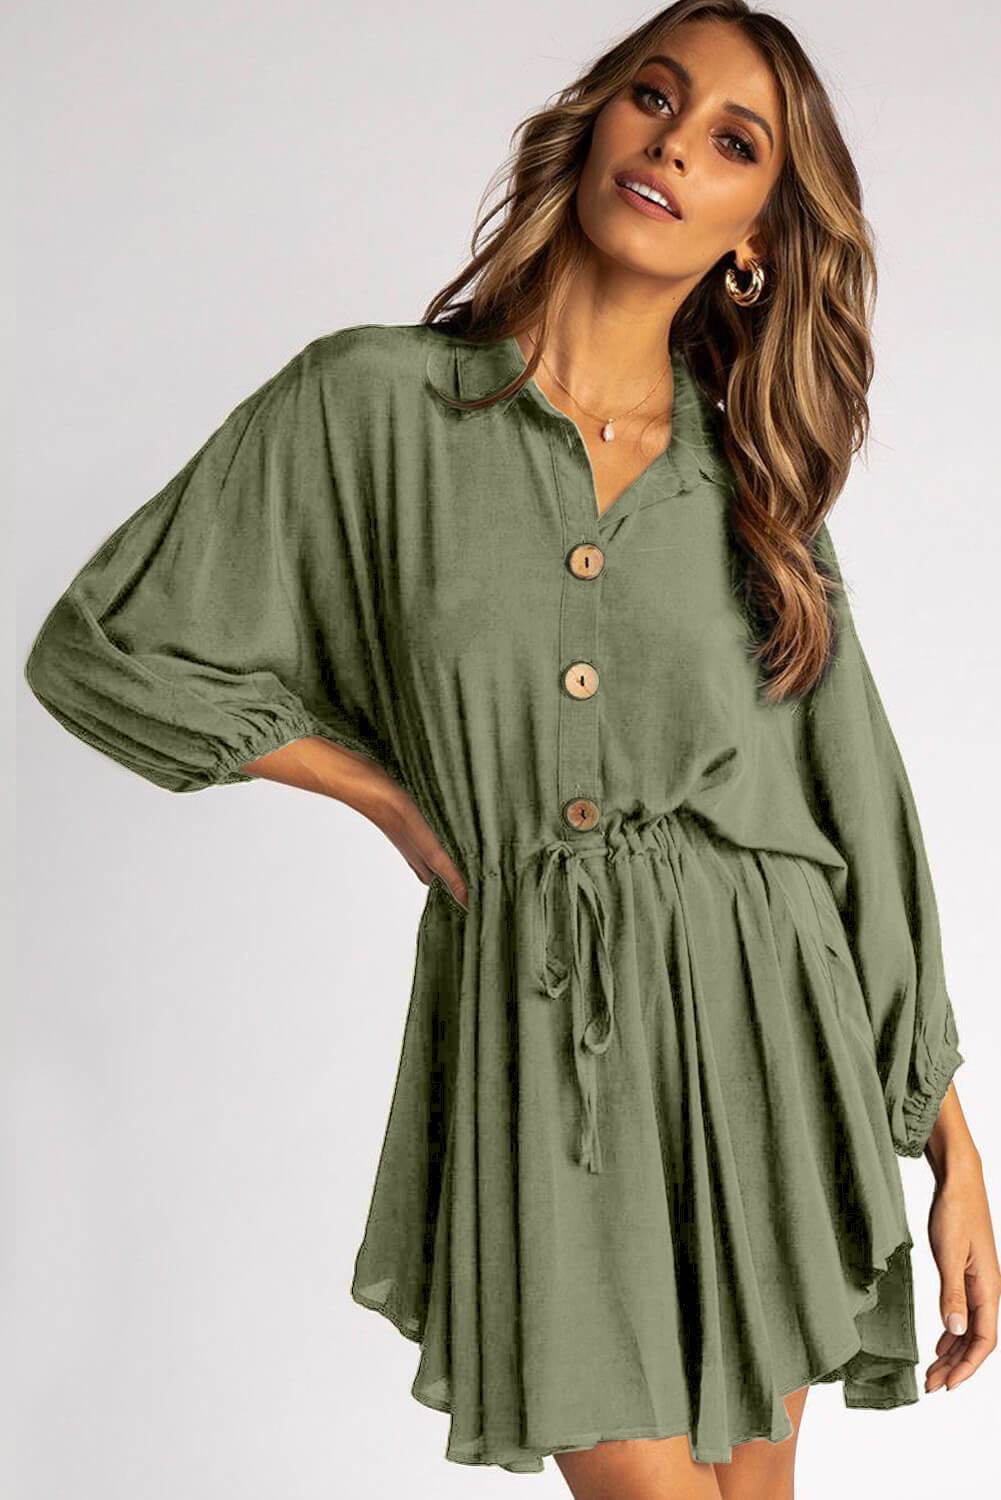 Sunday Afternoon Green Dress-Dresses, Mini Dresses-Azura Exchange